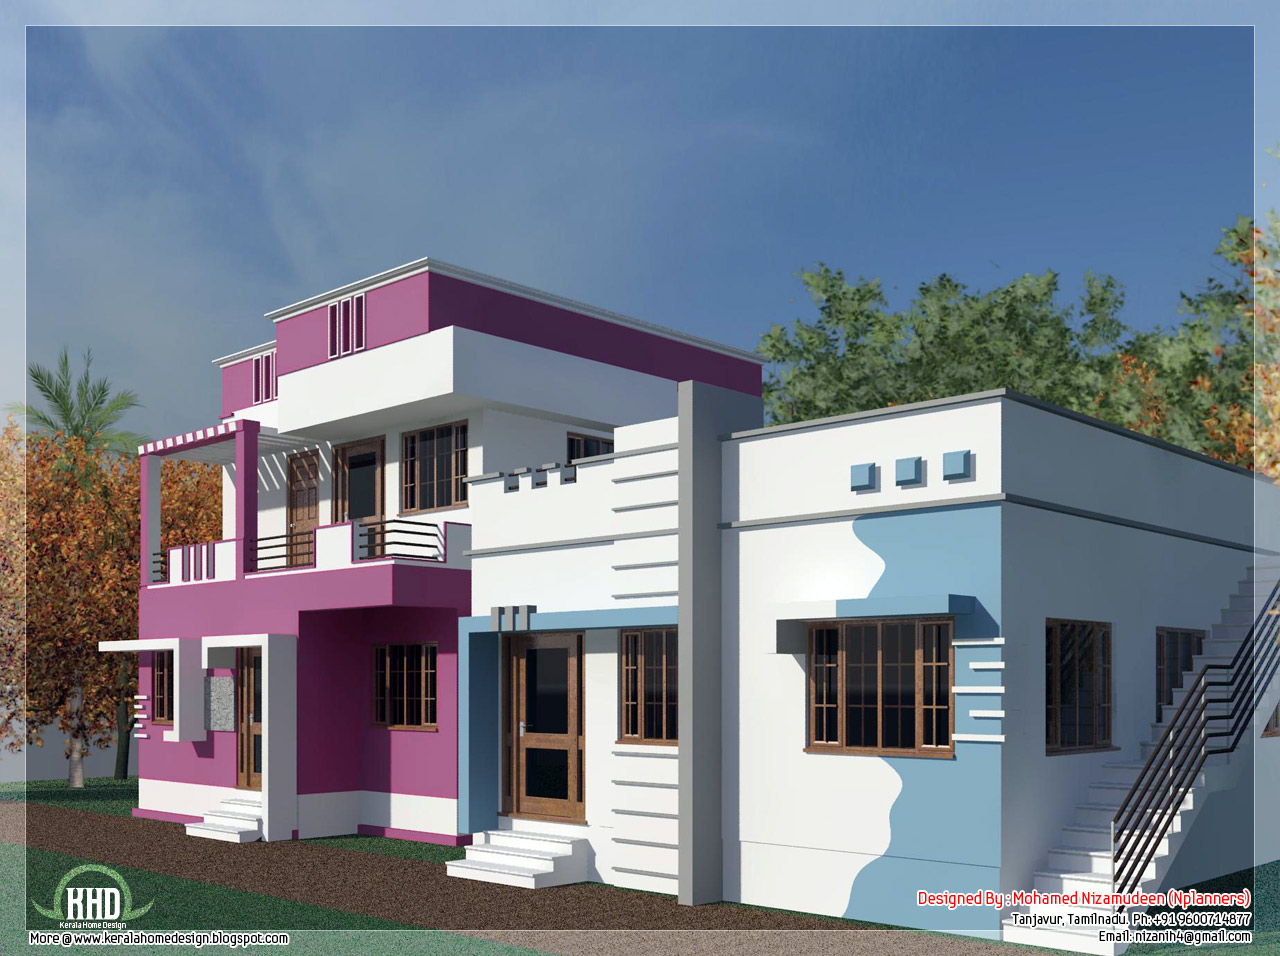 Tamilnadu model home design in 3000 kerala home for Model house plan